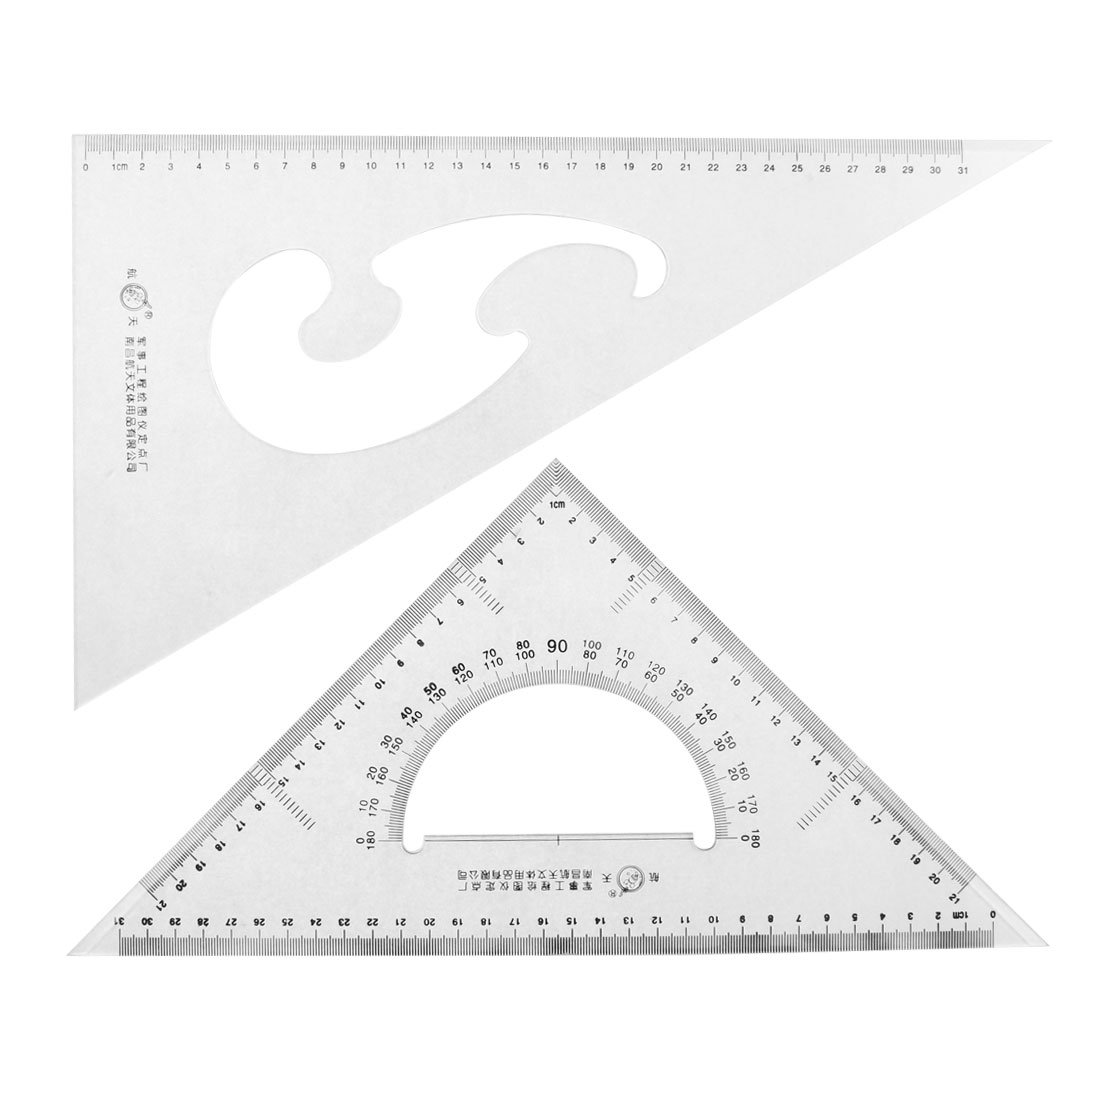 Uxcell School Office 30/60 45 Degree Measure Triangle Rulers Protractor, 2 Pieces (a15091100ux0127)